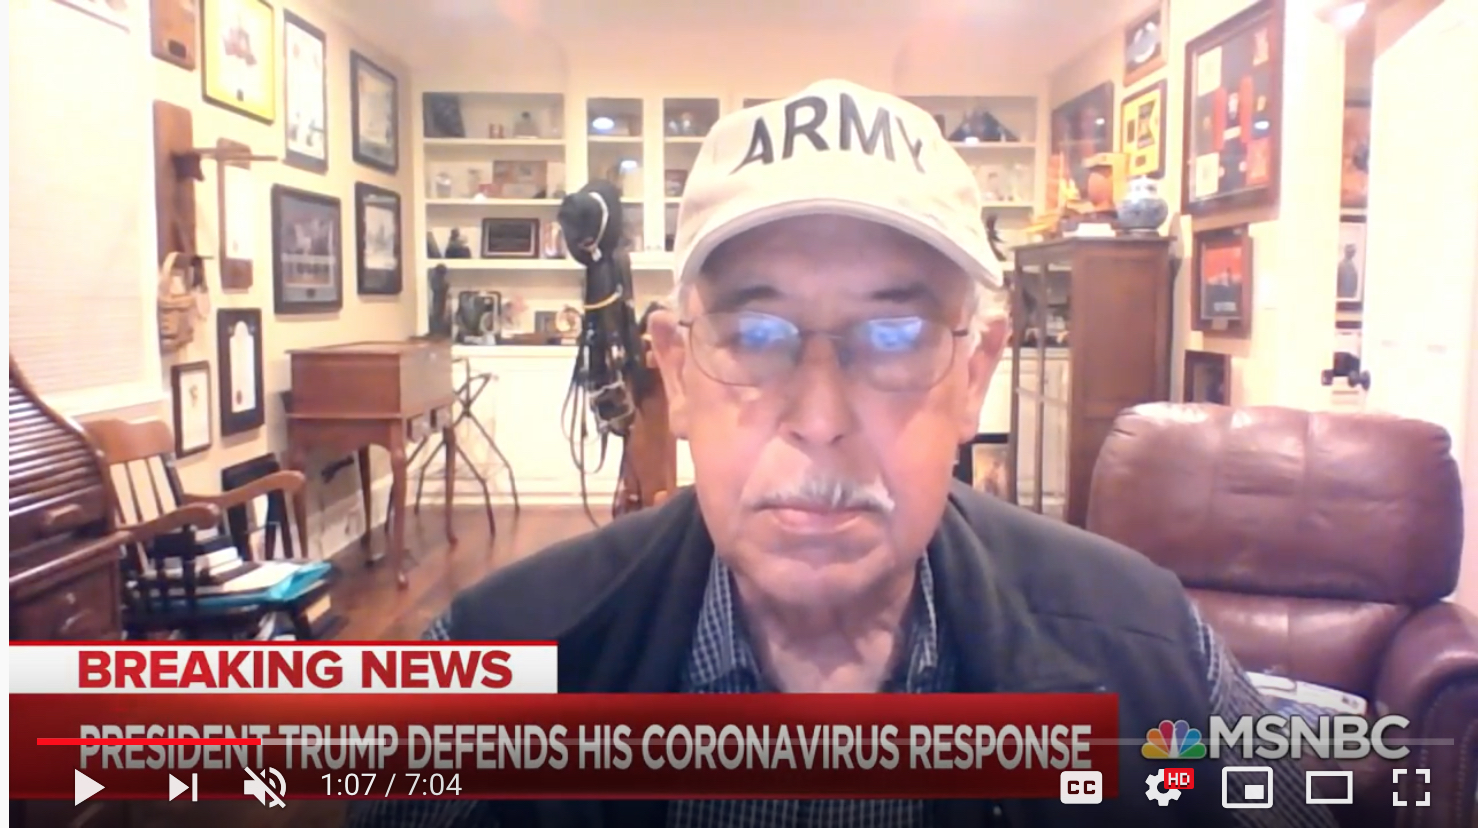 Talking heads are in isolation in their comfy home: Lt. Gen. Russel Honoré, who led military relief efforts following Hurricane Katrina in 2005, talks to MSNBC's Ali Velshi.